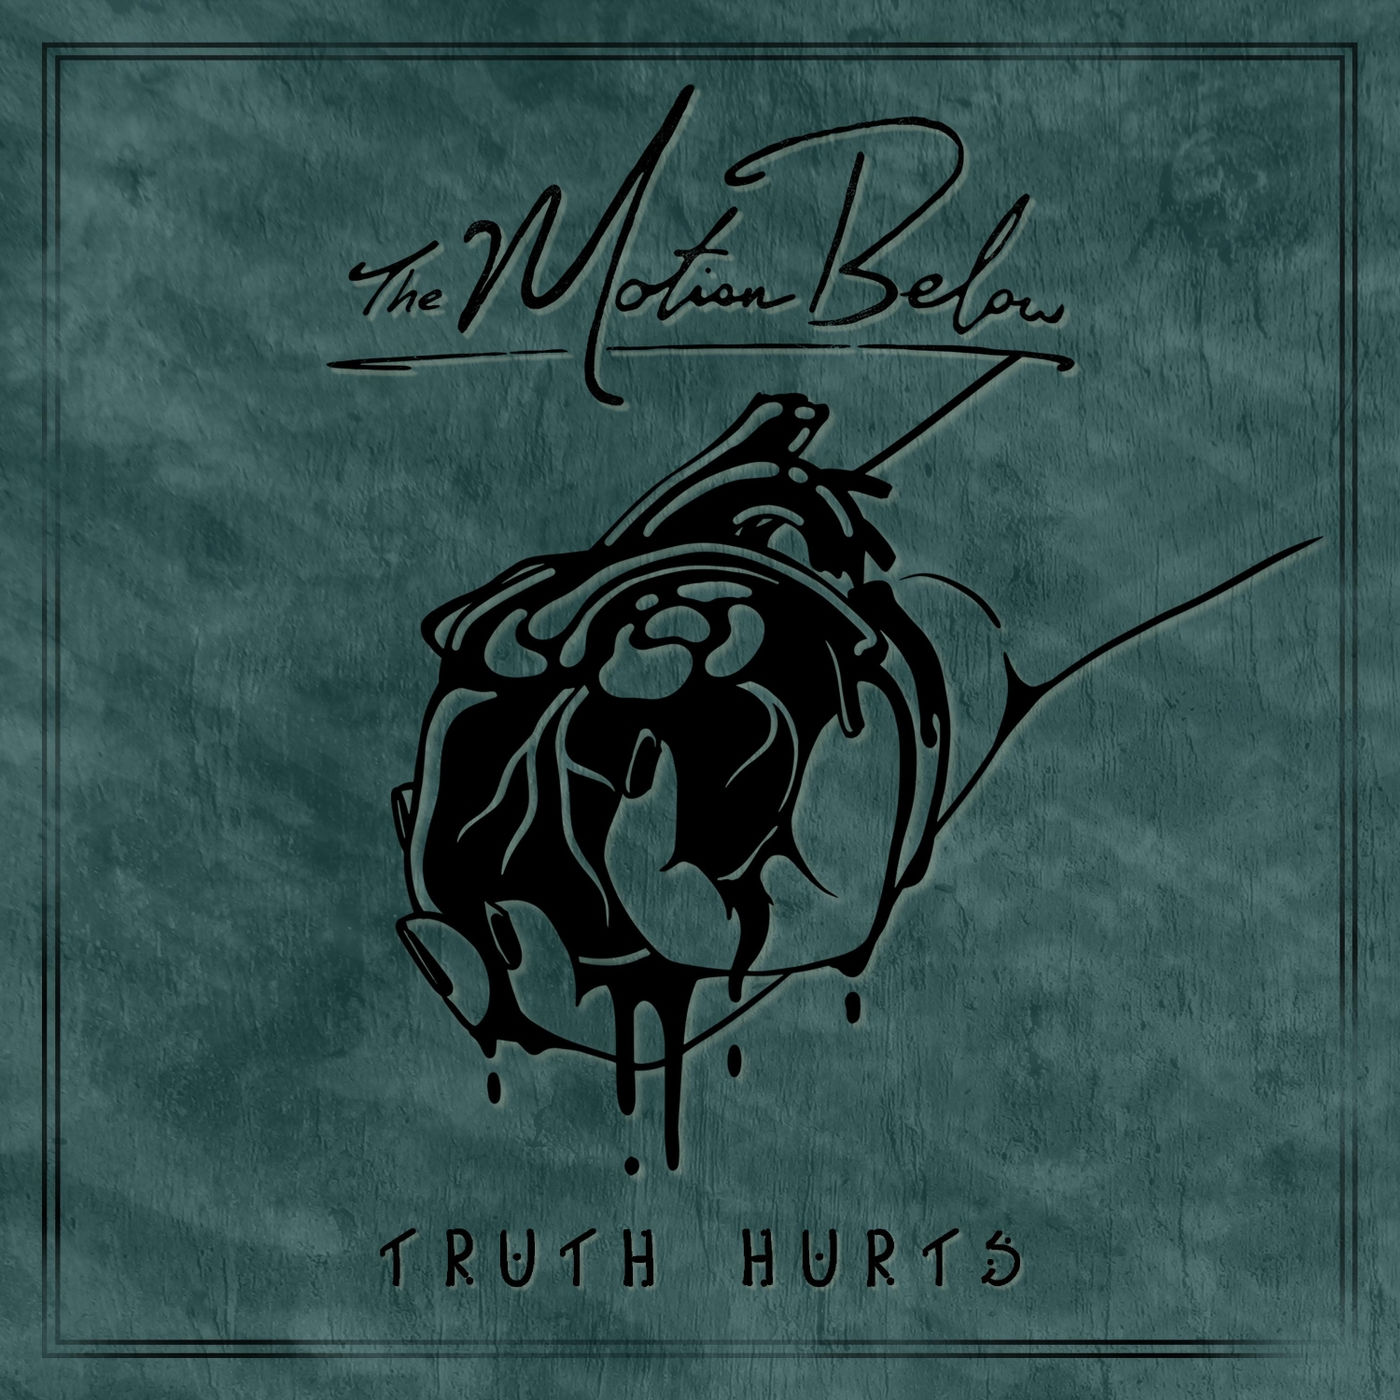 The Motion Below - Truth Hurts [single] (2020)